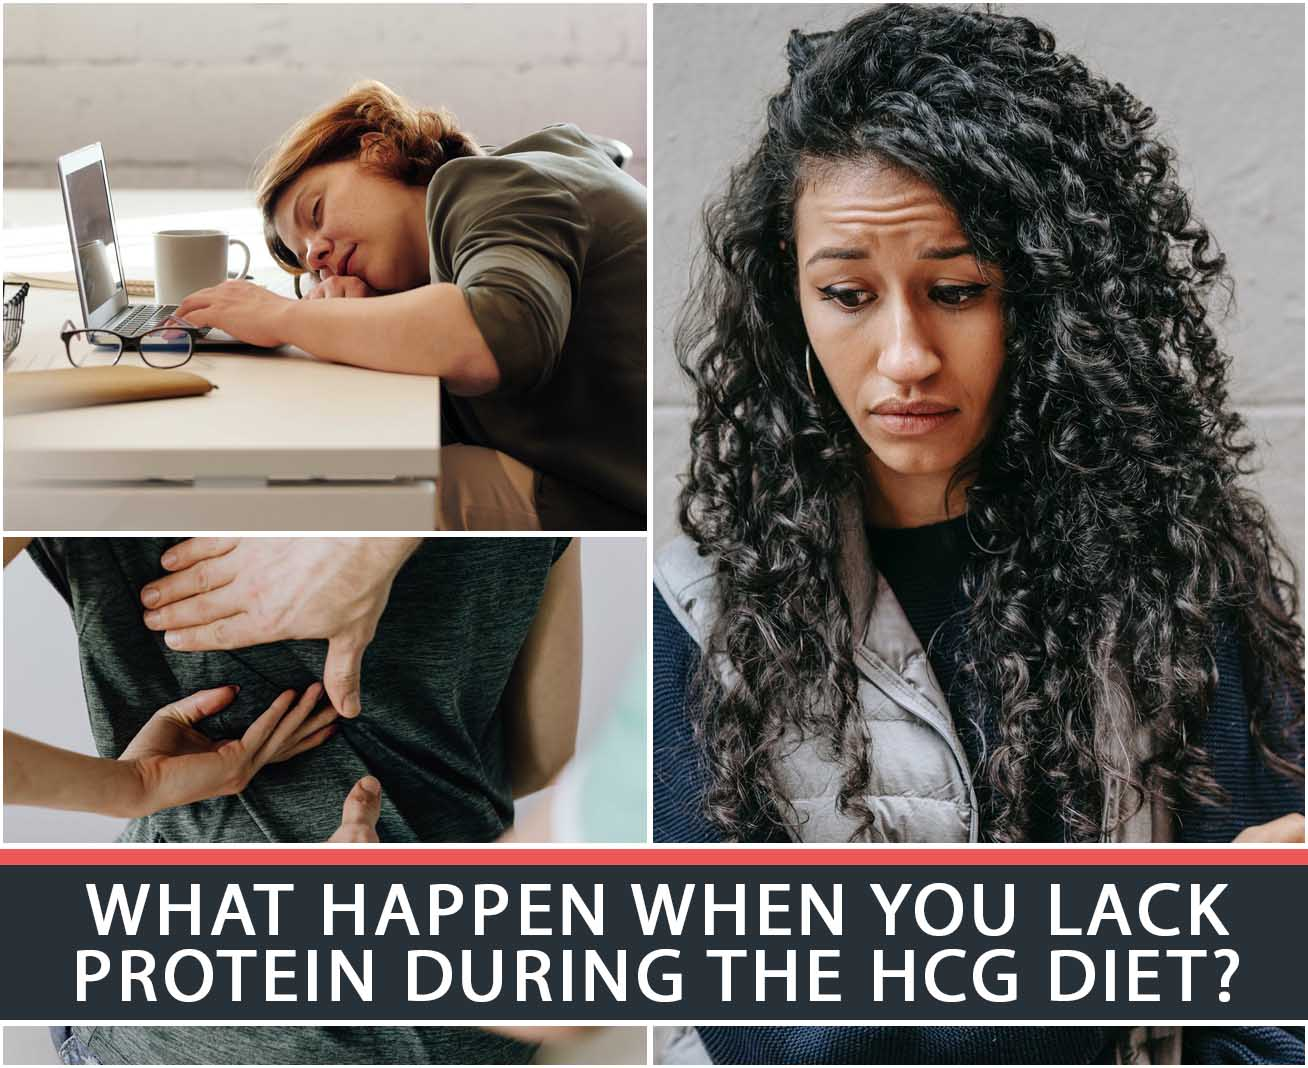 WHAT HAPPEN WHEN YOU LACK PROTEIN DURING THE HCG DIET?